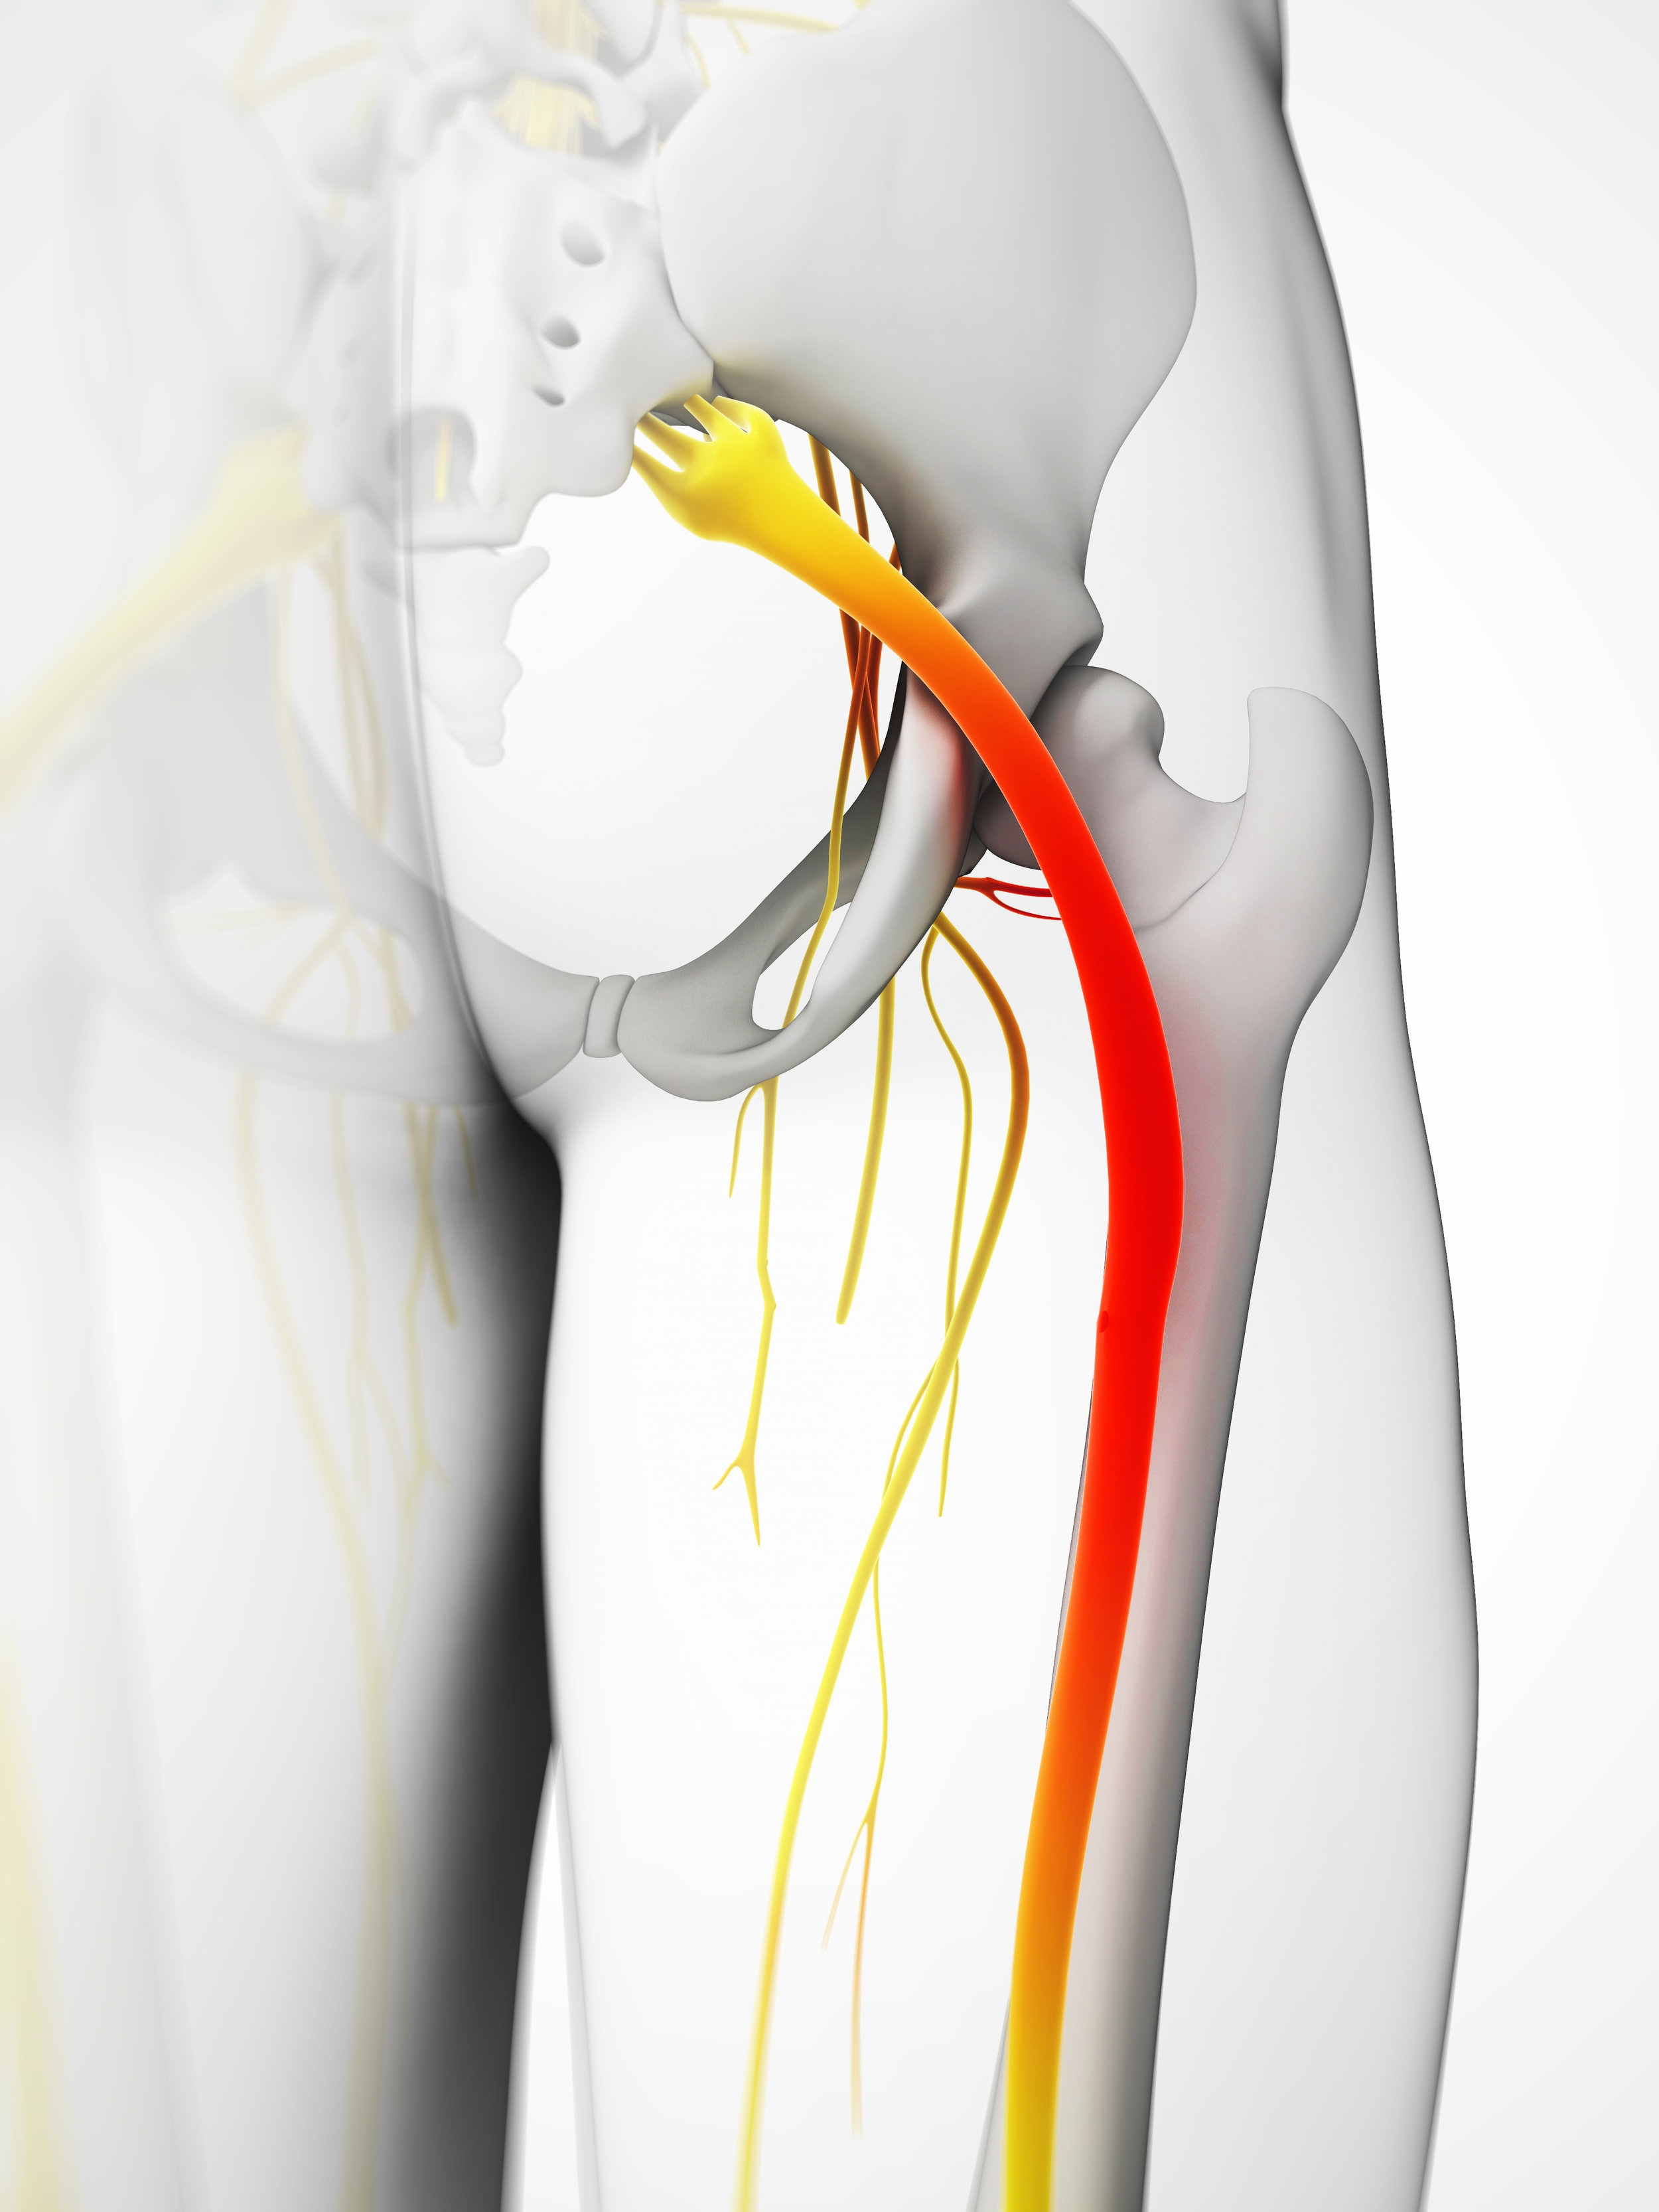 Sciatic nerve pain is extremely intense, and can include: numbness, tingling, pins and needles, weakness, loss of sensation, or any combination of these symptoms. -